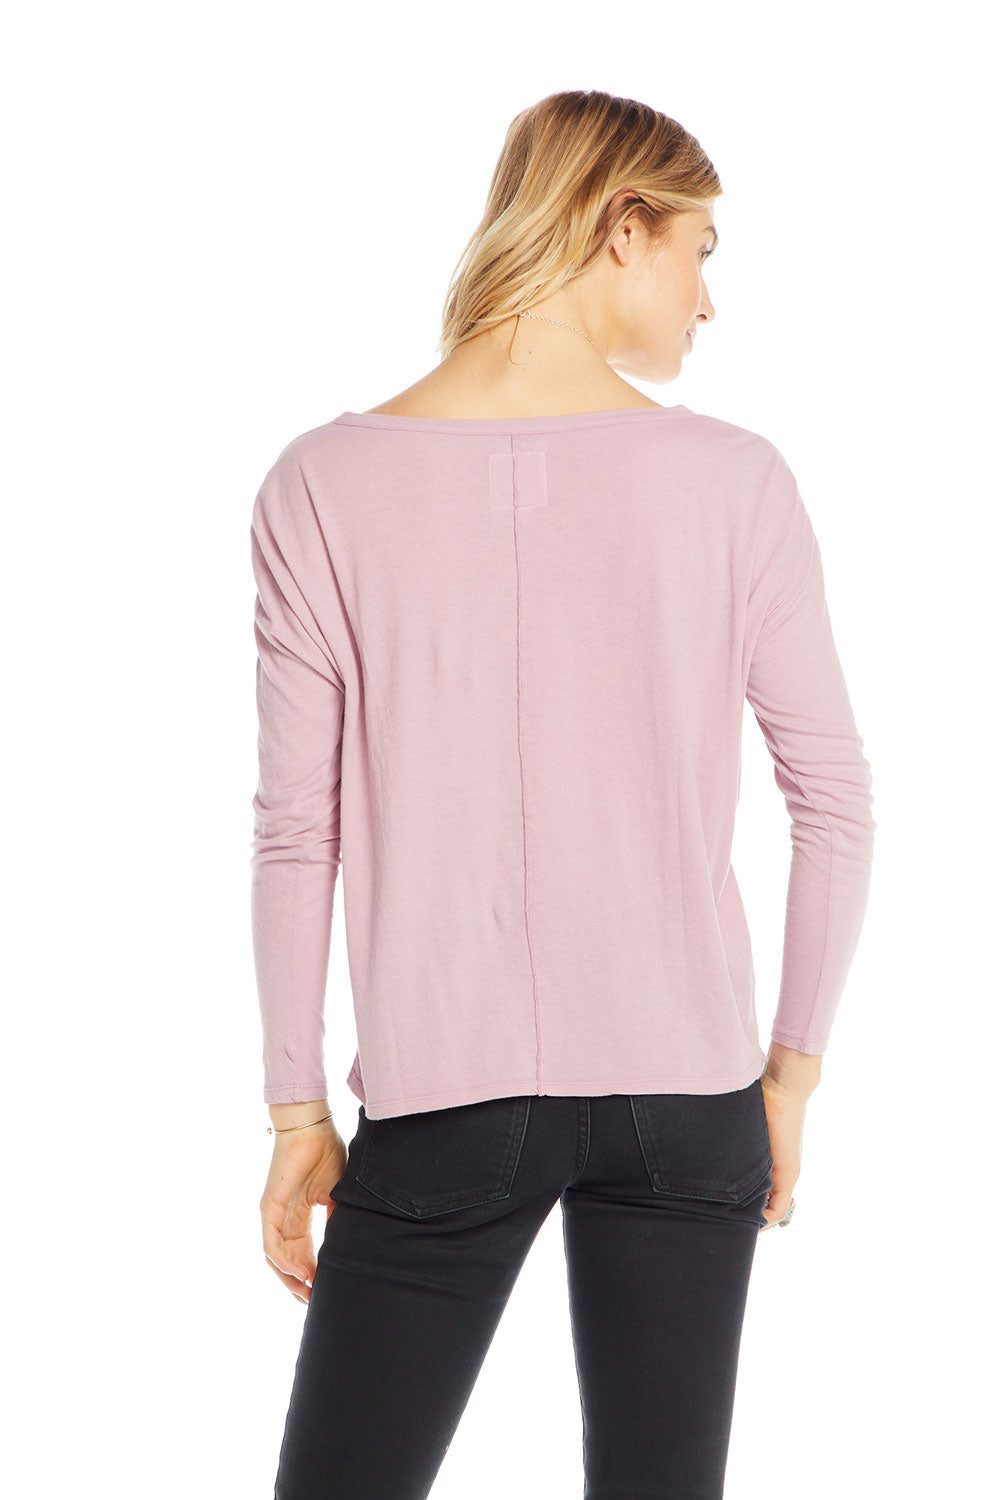 Cotton Basics Long Sleeve Crew Neck Seamed Back Dolman Tee BCA - chaserbrand